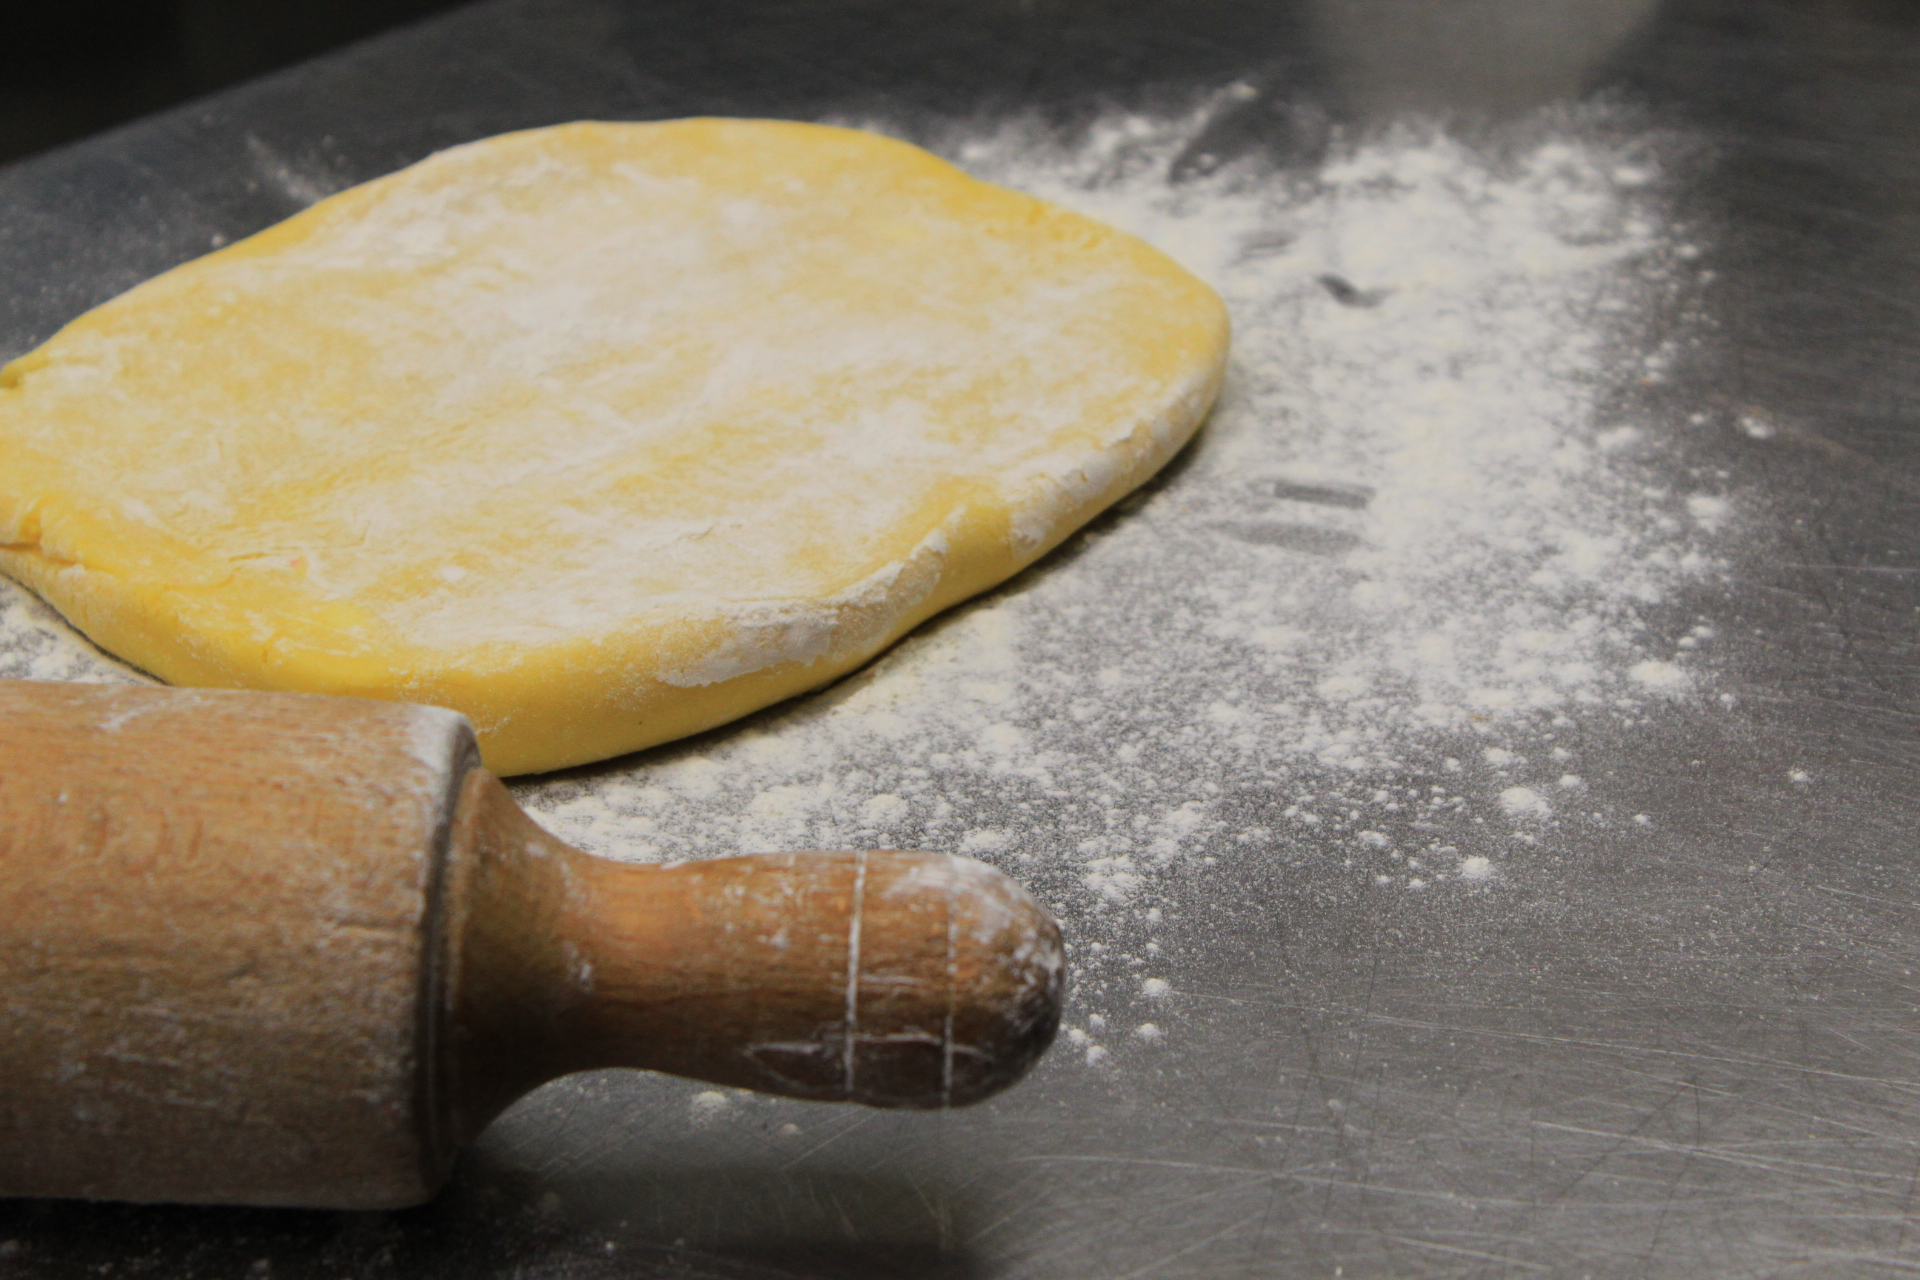 Roll out the shortcrust pastry and place it in the pan.